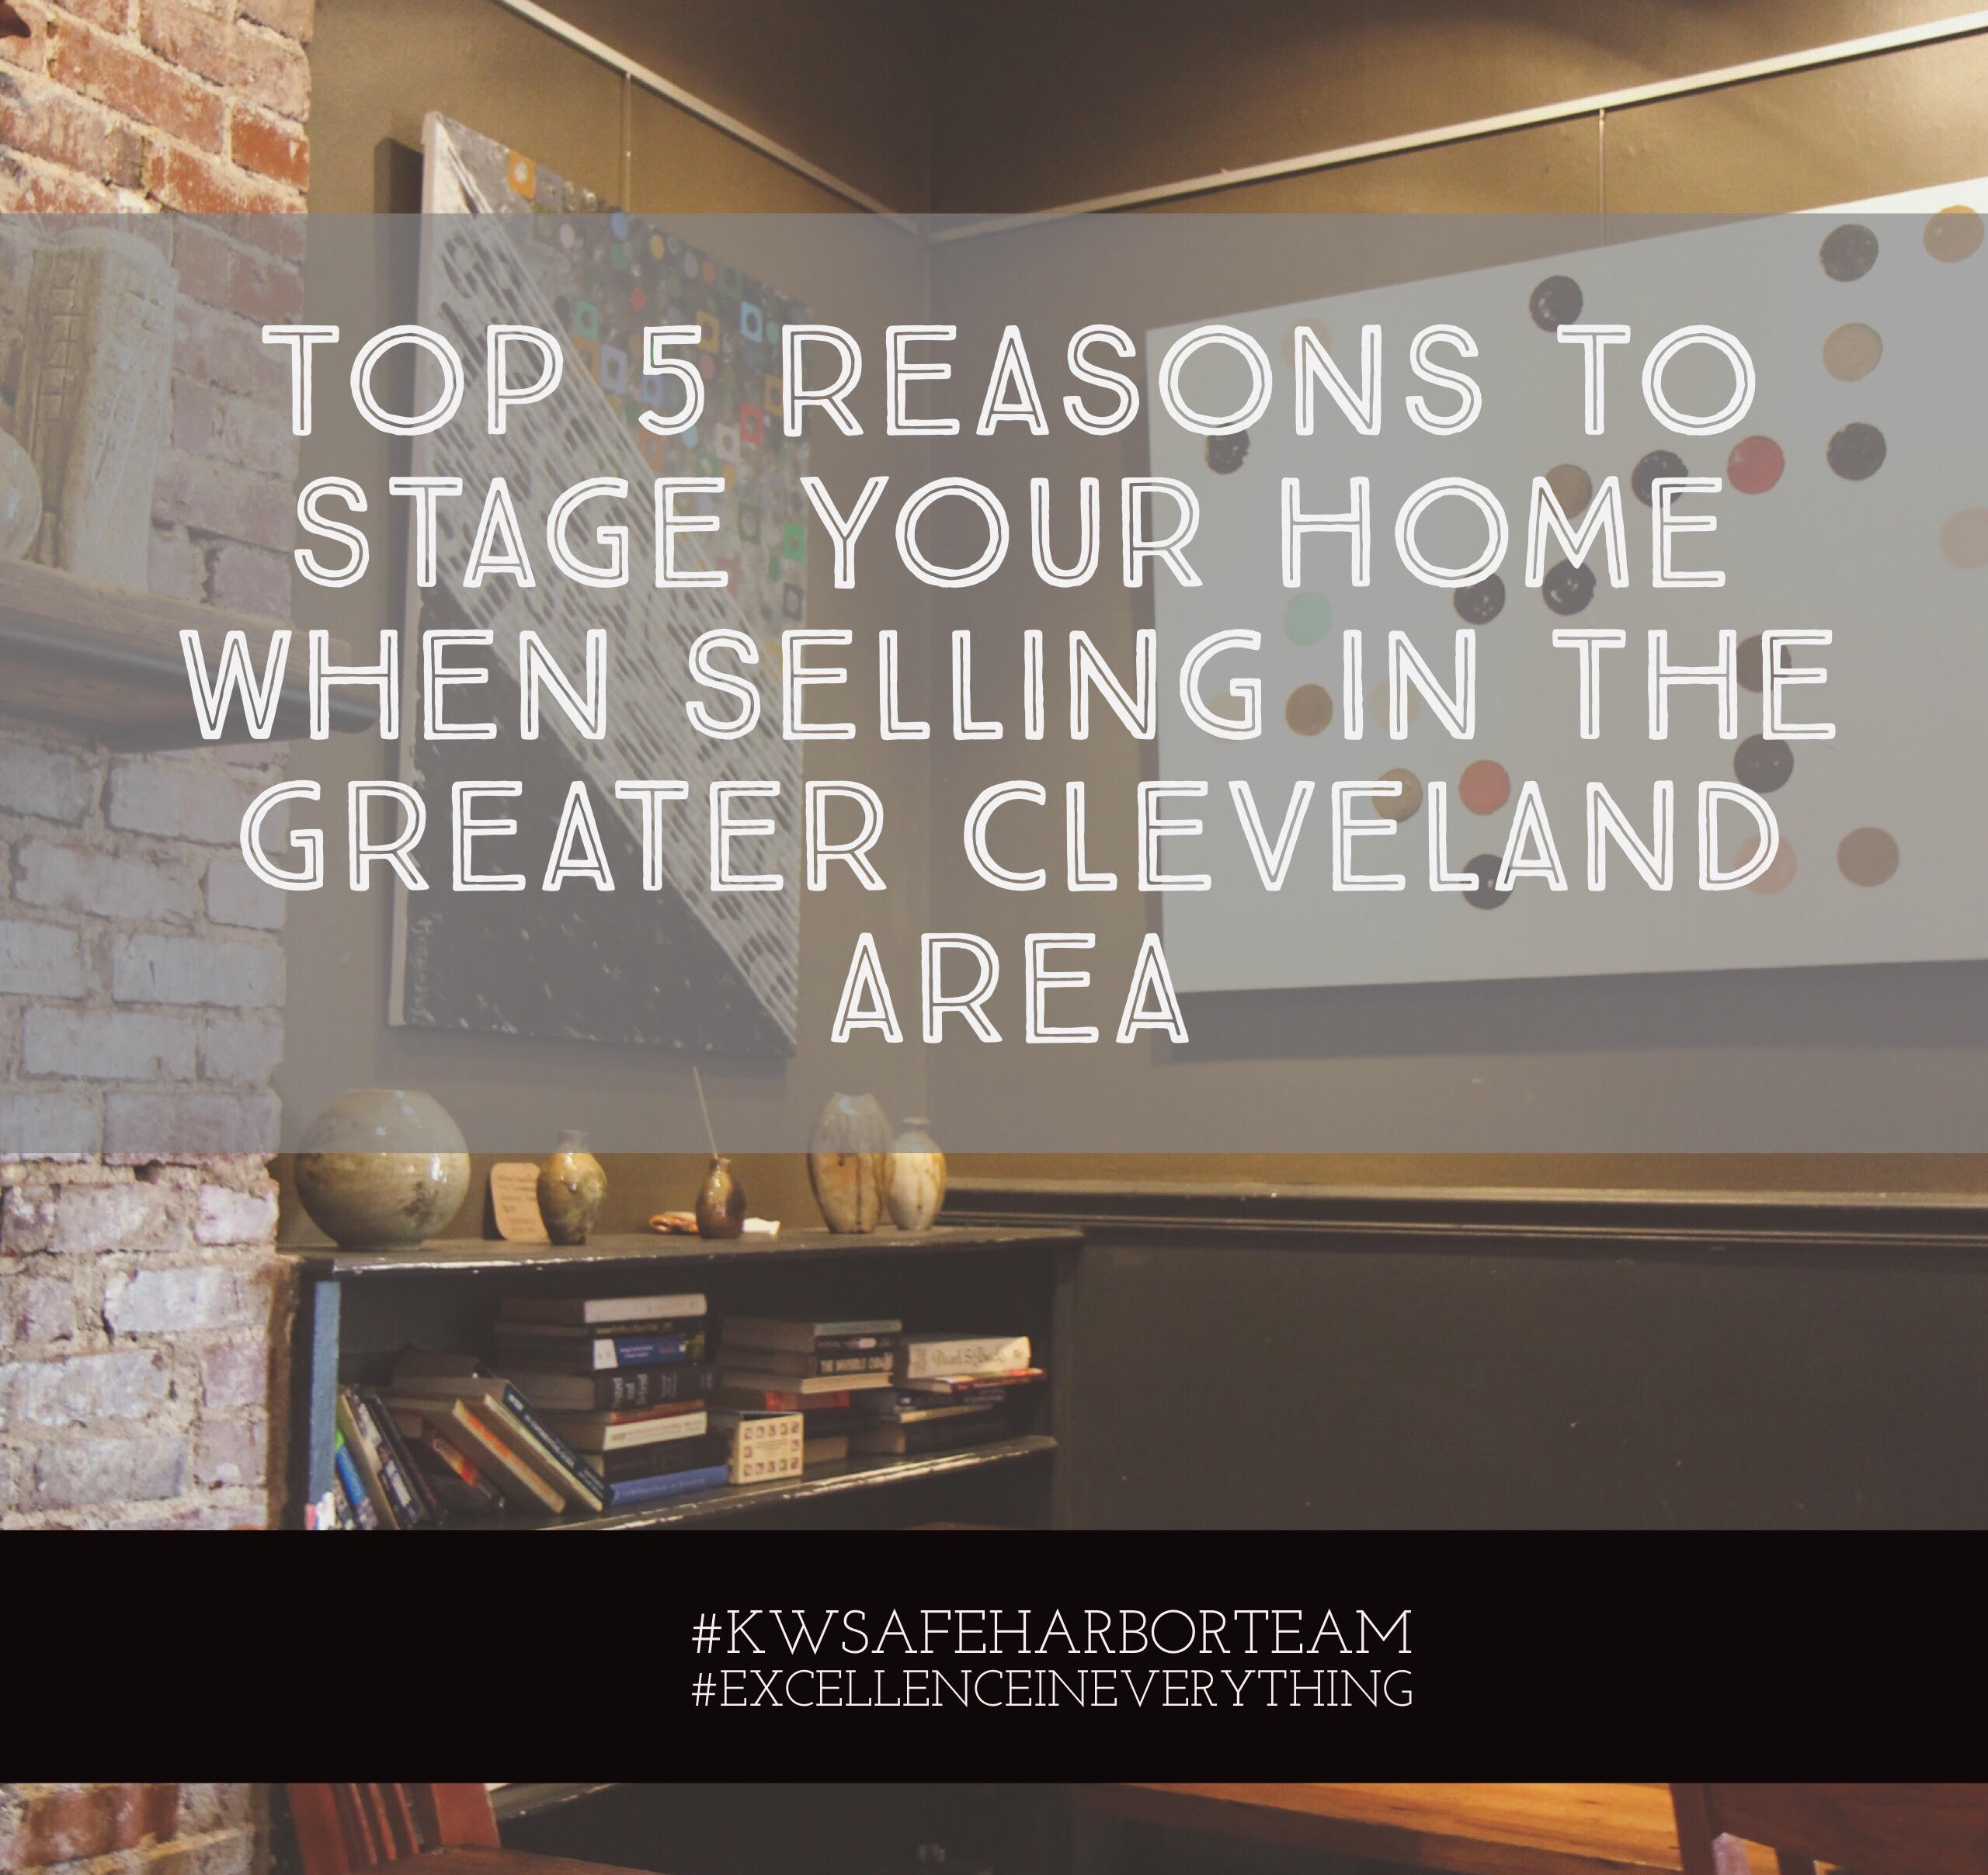 Top 5 Reasons to Stage Your Home When Selling in the Greater Cleveland Area